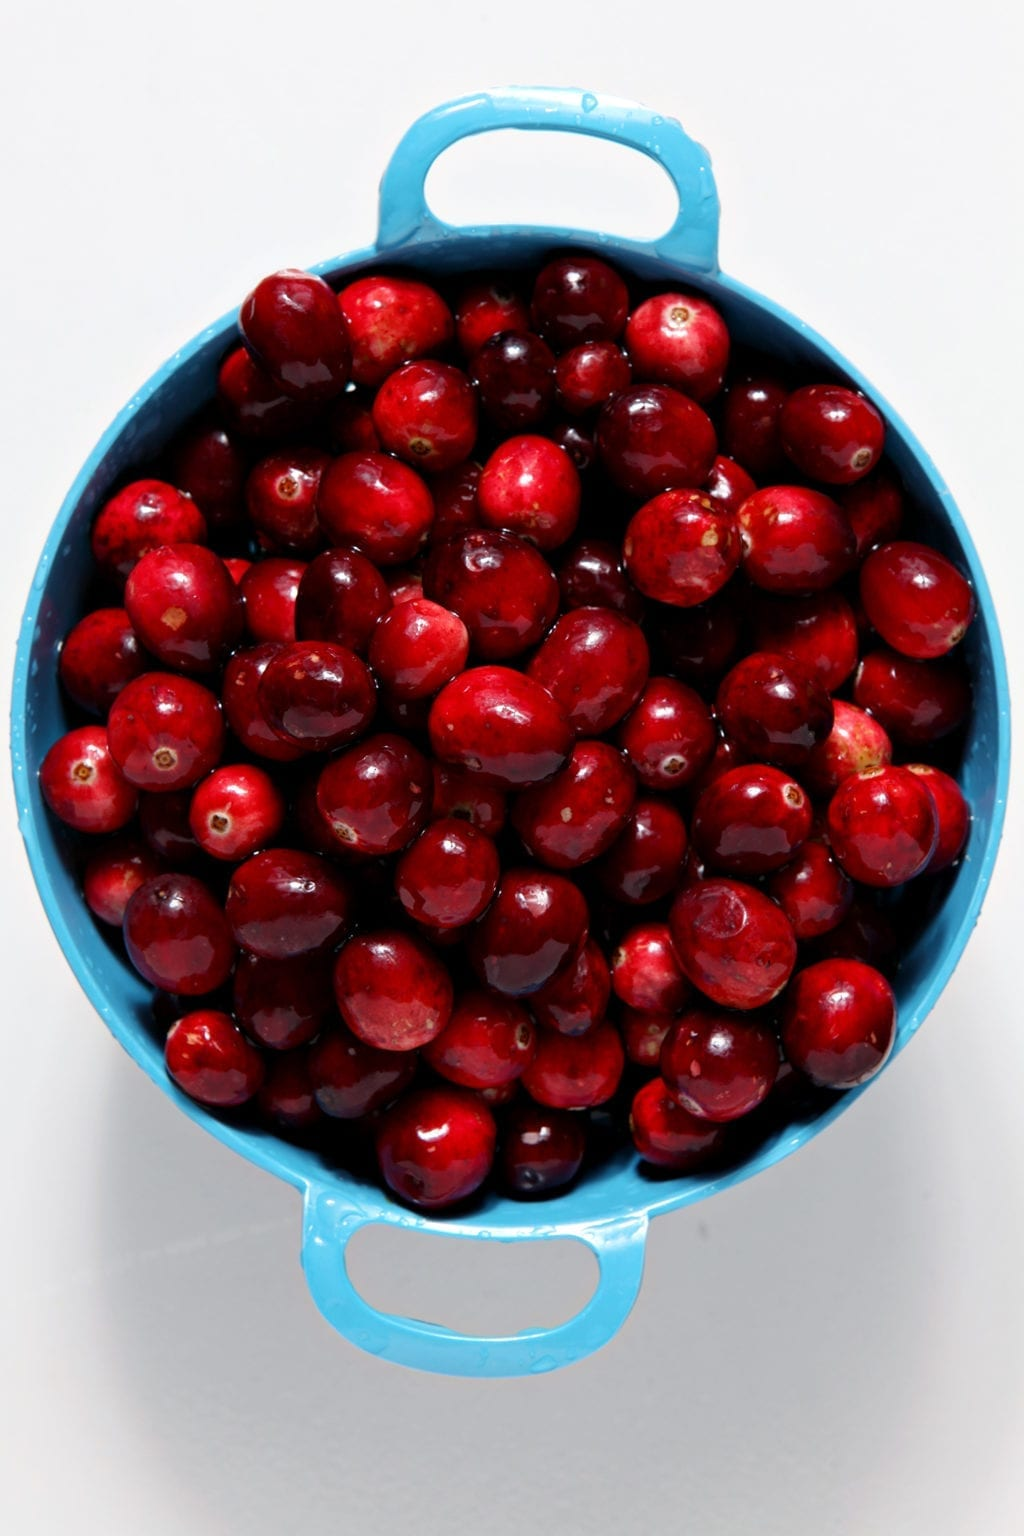 Cranberries sit in a blue colander, from above